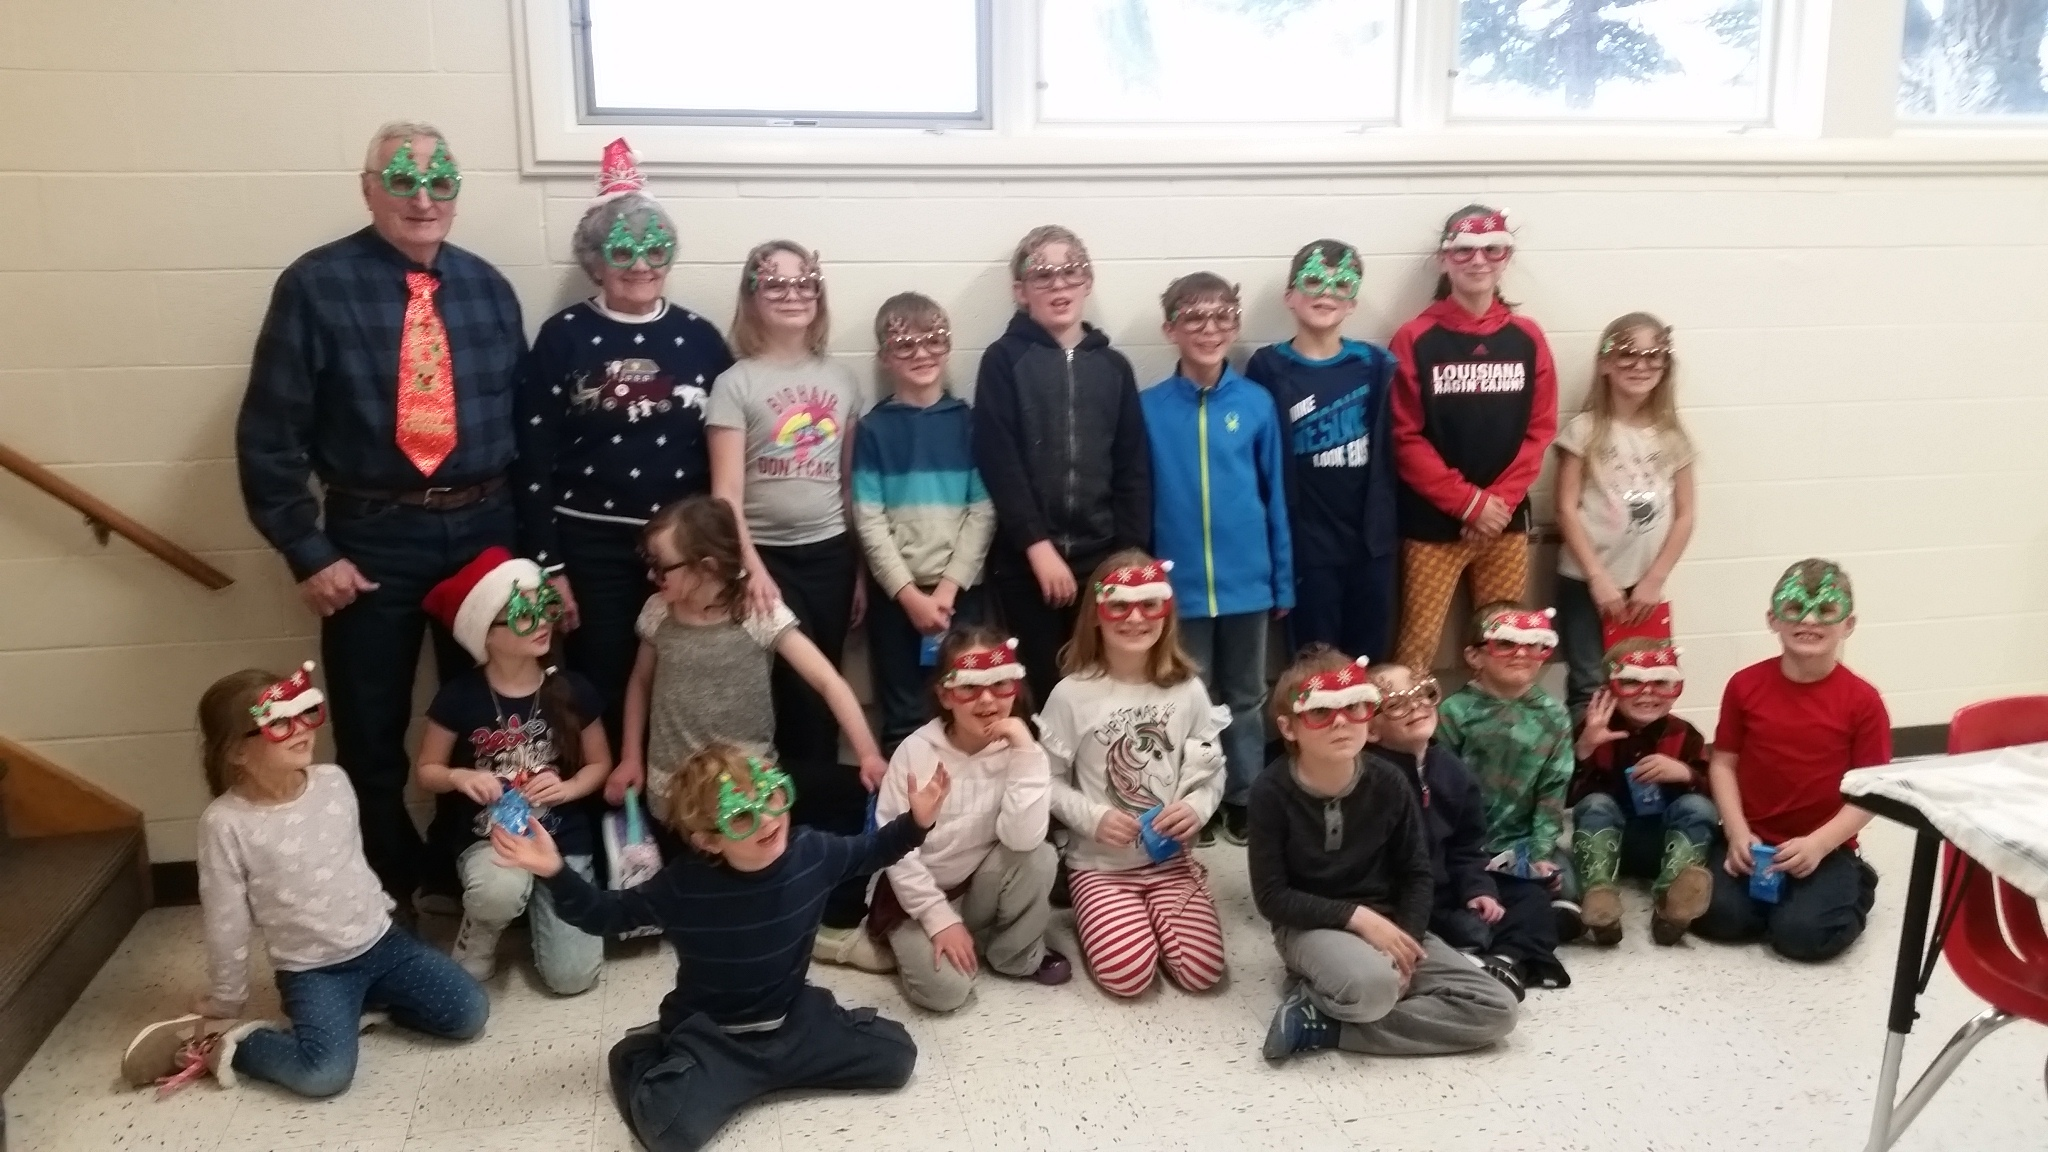 Students get festive during a Wapiti lunch served by local community volunteers.